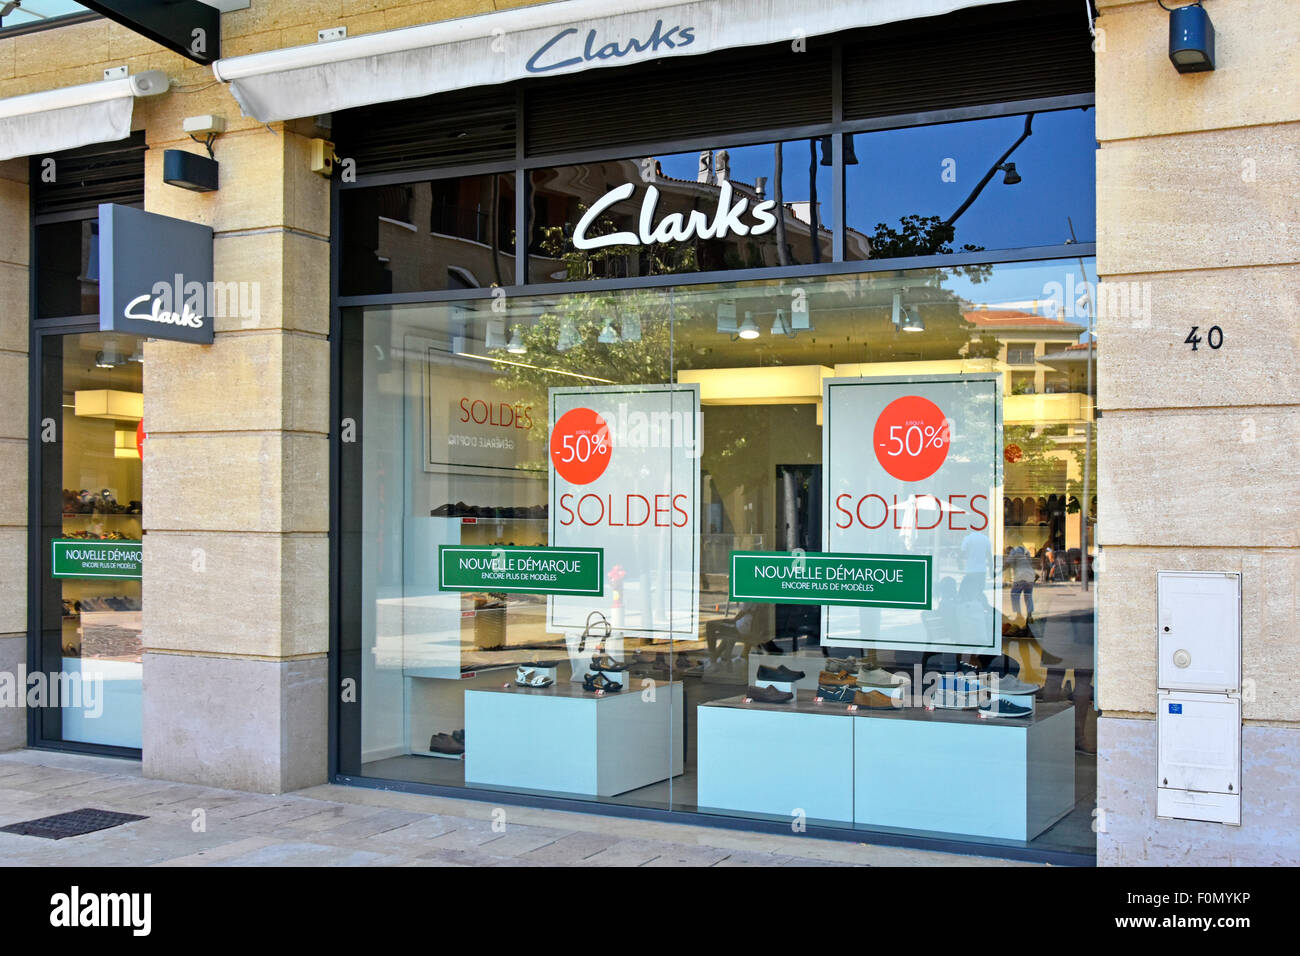 clarks shoes shopfront in aix en provence with 50 discount sale stock photo royalty free image. Black Bedroom Furniture Sets. Home Design Ideas